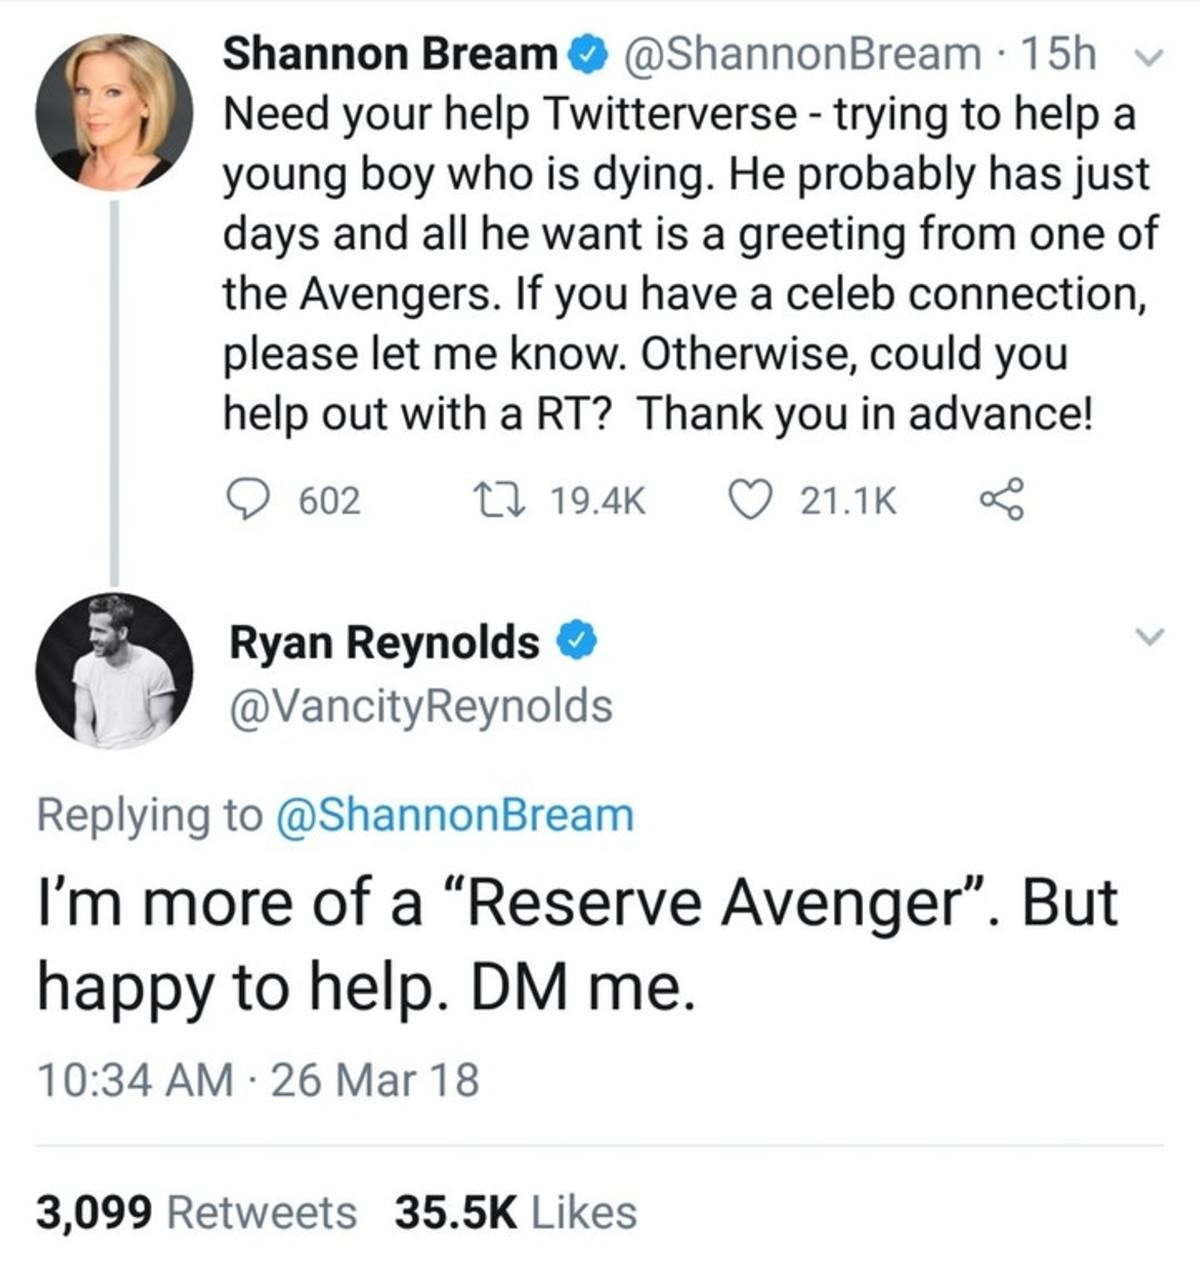 Ryan assembles. join list: MarvelStuff (205 subs)Mention History. Shannon Bream 9 (ii) I 'NP' Need your help - trying to help a young boy who is dying. He proba